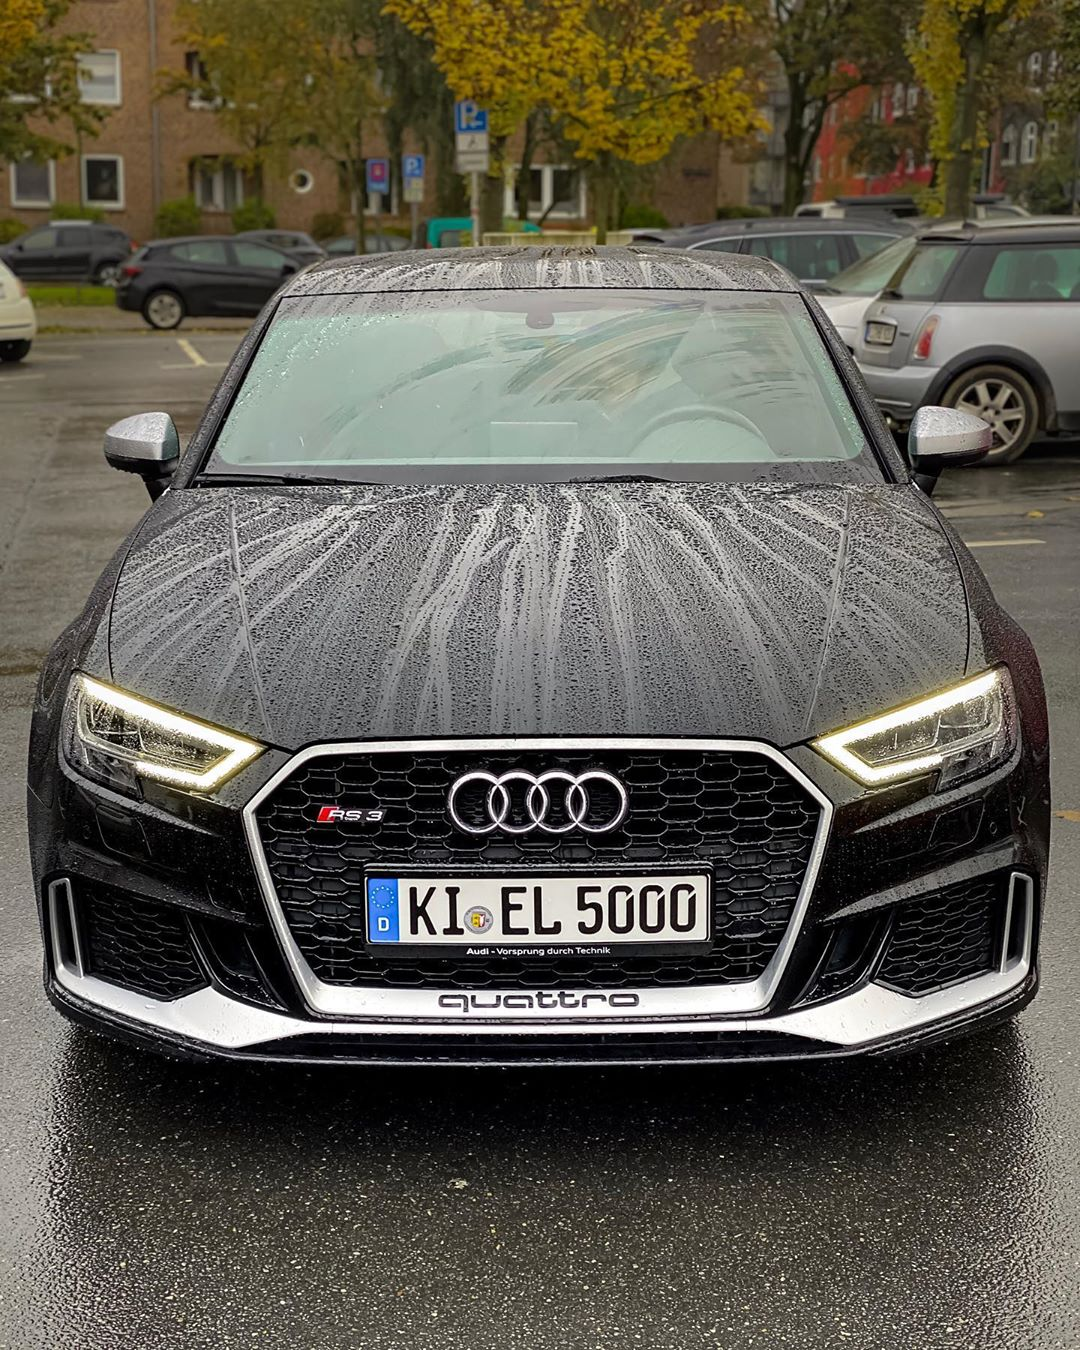 Water is dripping off our RS3💦😋…what's your favorite hyper hatch & why?🤔 #Audi rs#audi #audisport #rs3 #rs3limousine #rs3sedan #rs38v #pantherschwarz #pantherblack #blackbeauty #blackpanther #automannsgarage #automanntv